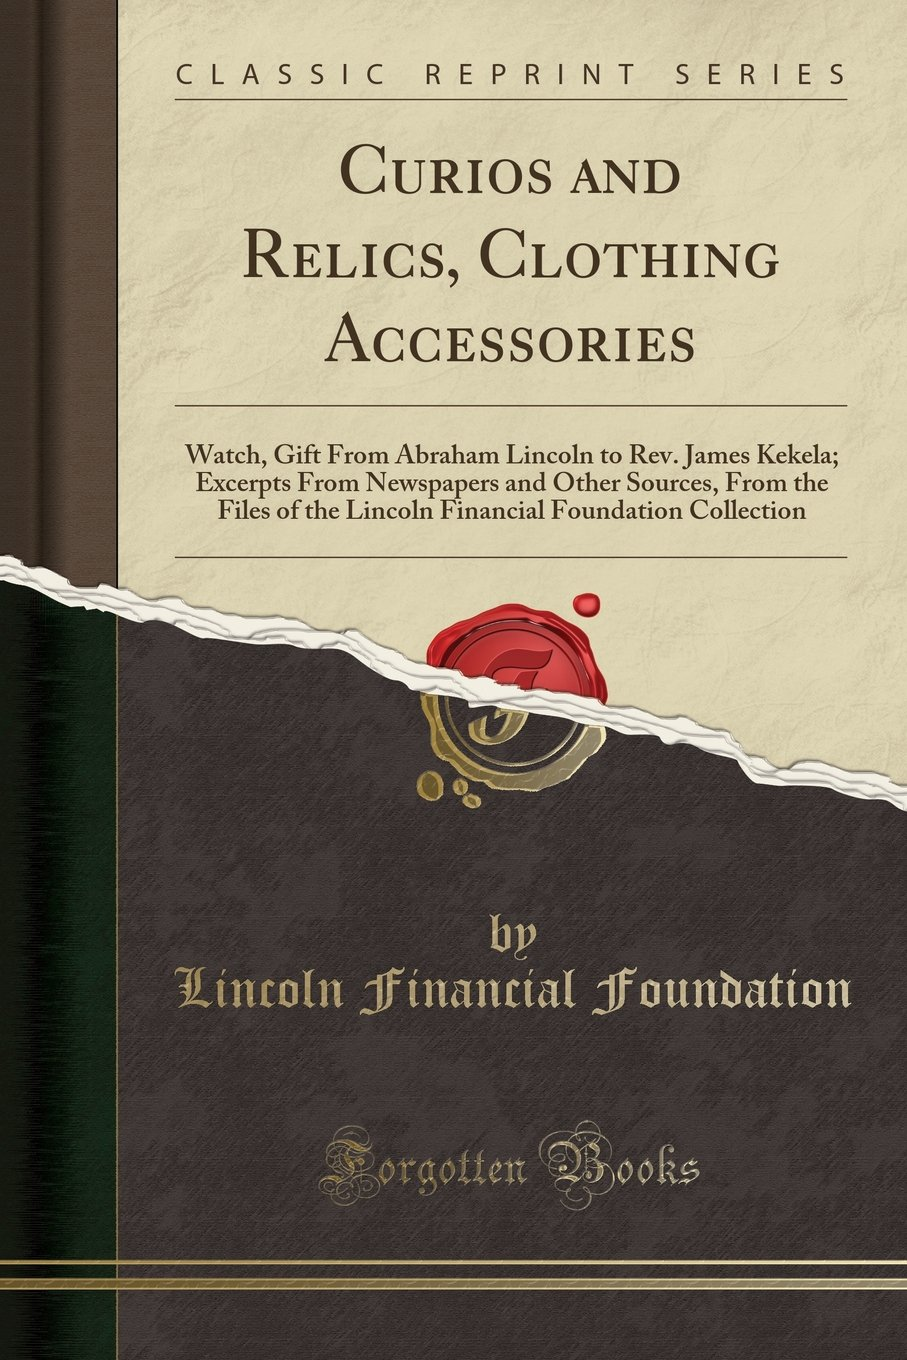 Download Curios and Relics, Clothing Accessories: Watch, Gift From Abraham Lincoln to Rev. James Kekela; Excerpts From Newspapers and Other Sources, From the ... Foundation Collection (Classic Reprint) ebook